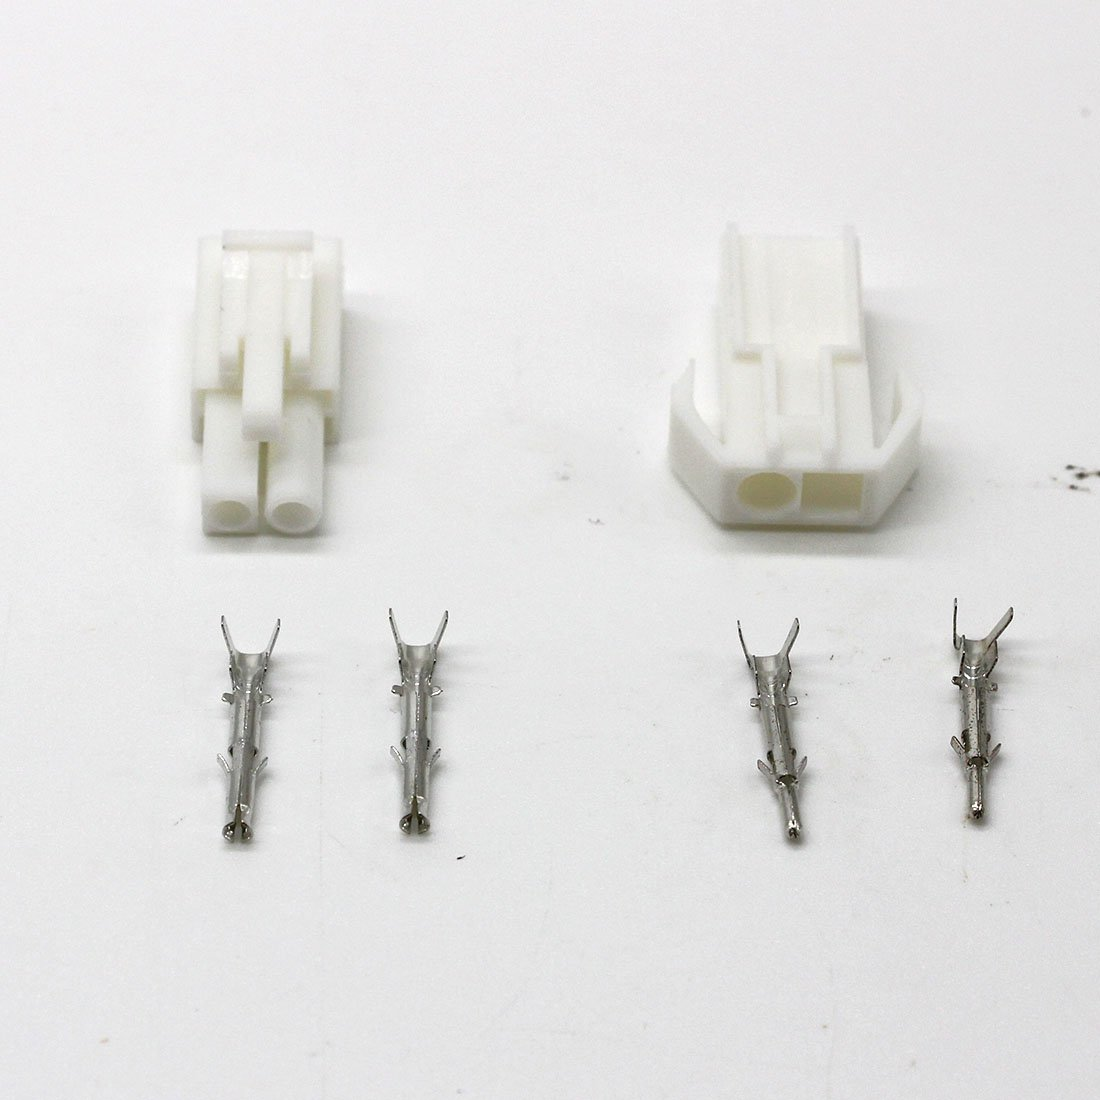 20 sets Small Tamiya connector Set Kits mini Tamiya set EL 4.5MM male Female socket plug with 2P 2 Way/pin ogry